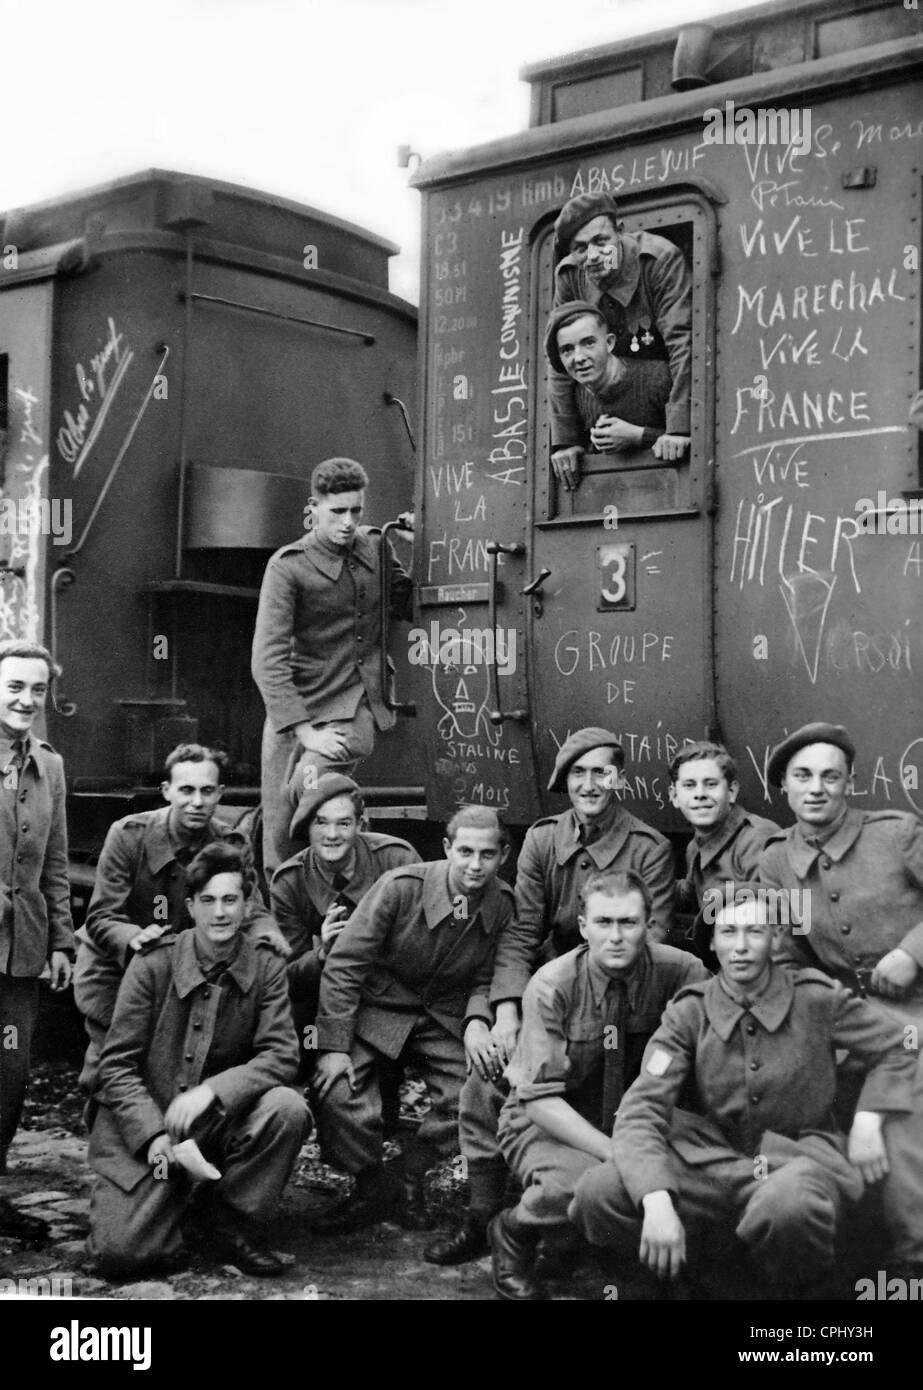 Members of the Legion of French Volunteers pose beside their train wagon, which is painted with anti-semitic and - Stock Image